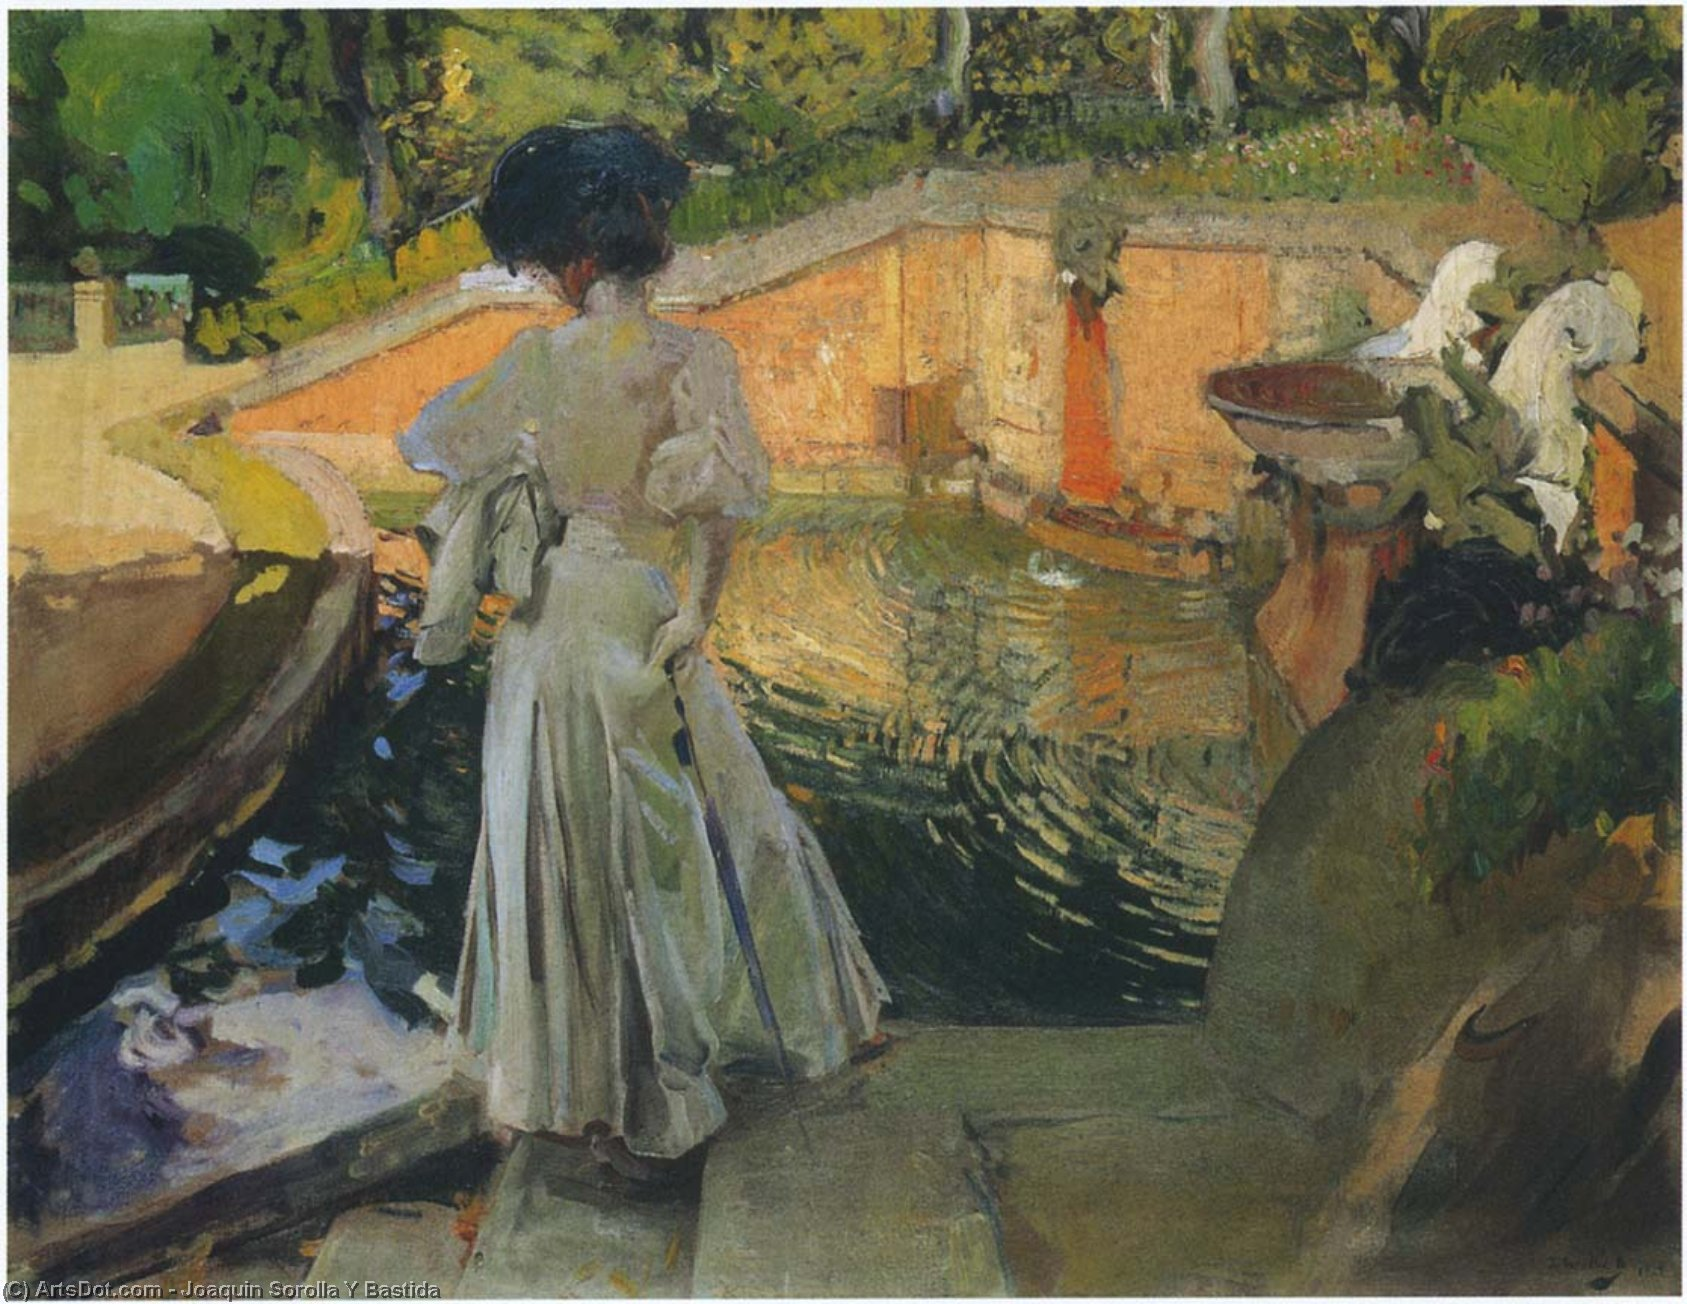 Watching the Fish, Oil On Canvas by Joaquin Sorolla Y Bastida (1863-1923, Spain)